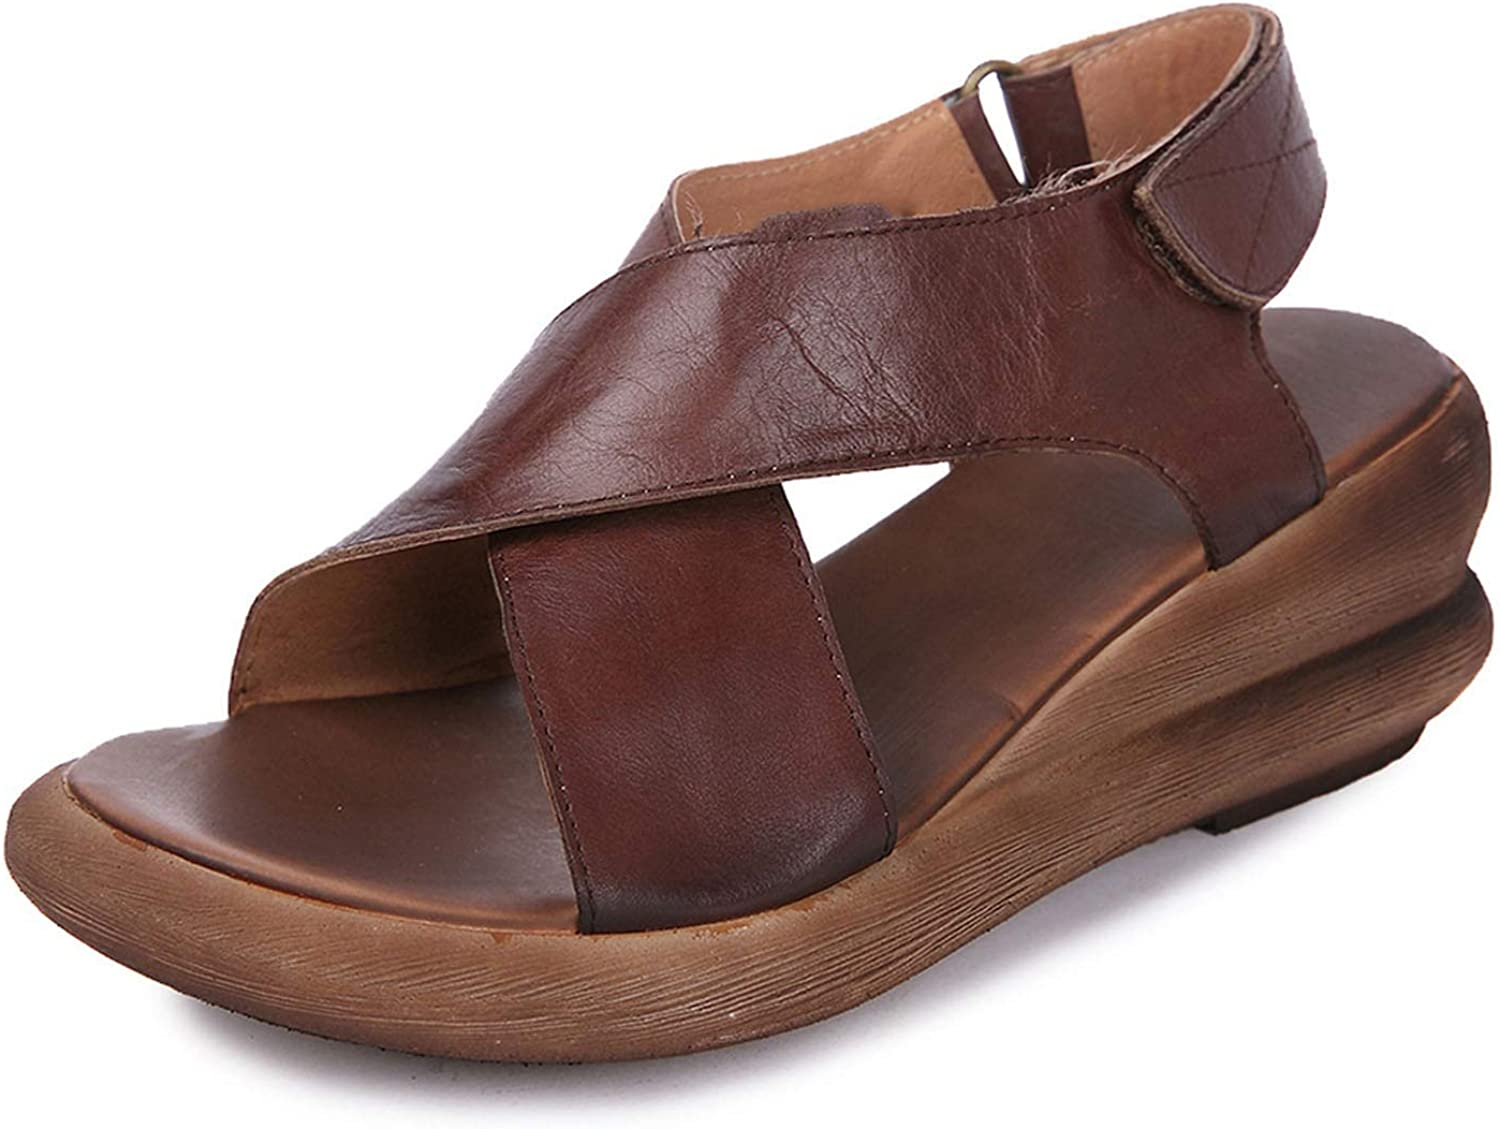 Women Genuine Leather Hand-Made Sandal Retro and Stylish shoes for Women